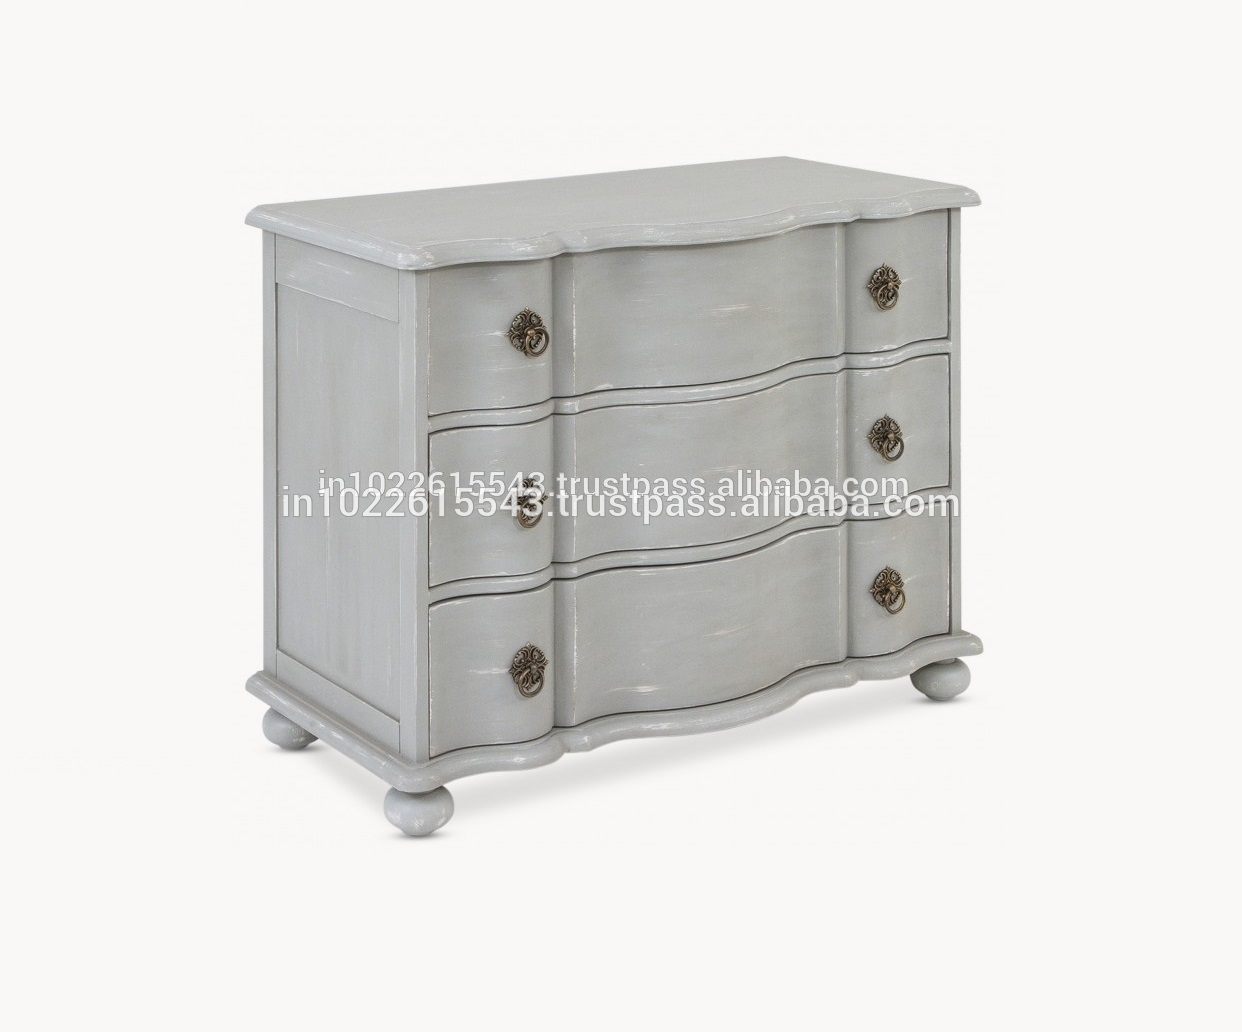 Inspiration about Industrial Shabby Chic Elegant Sideboard,industrial Rustic Wood Intended For 2018 Corrugated Metal Sideboards (#19 of 20)